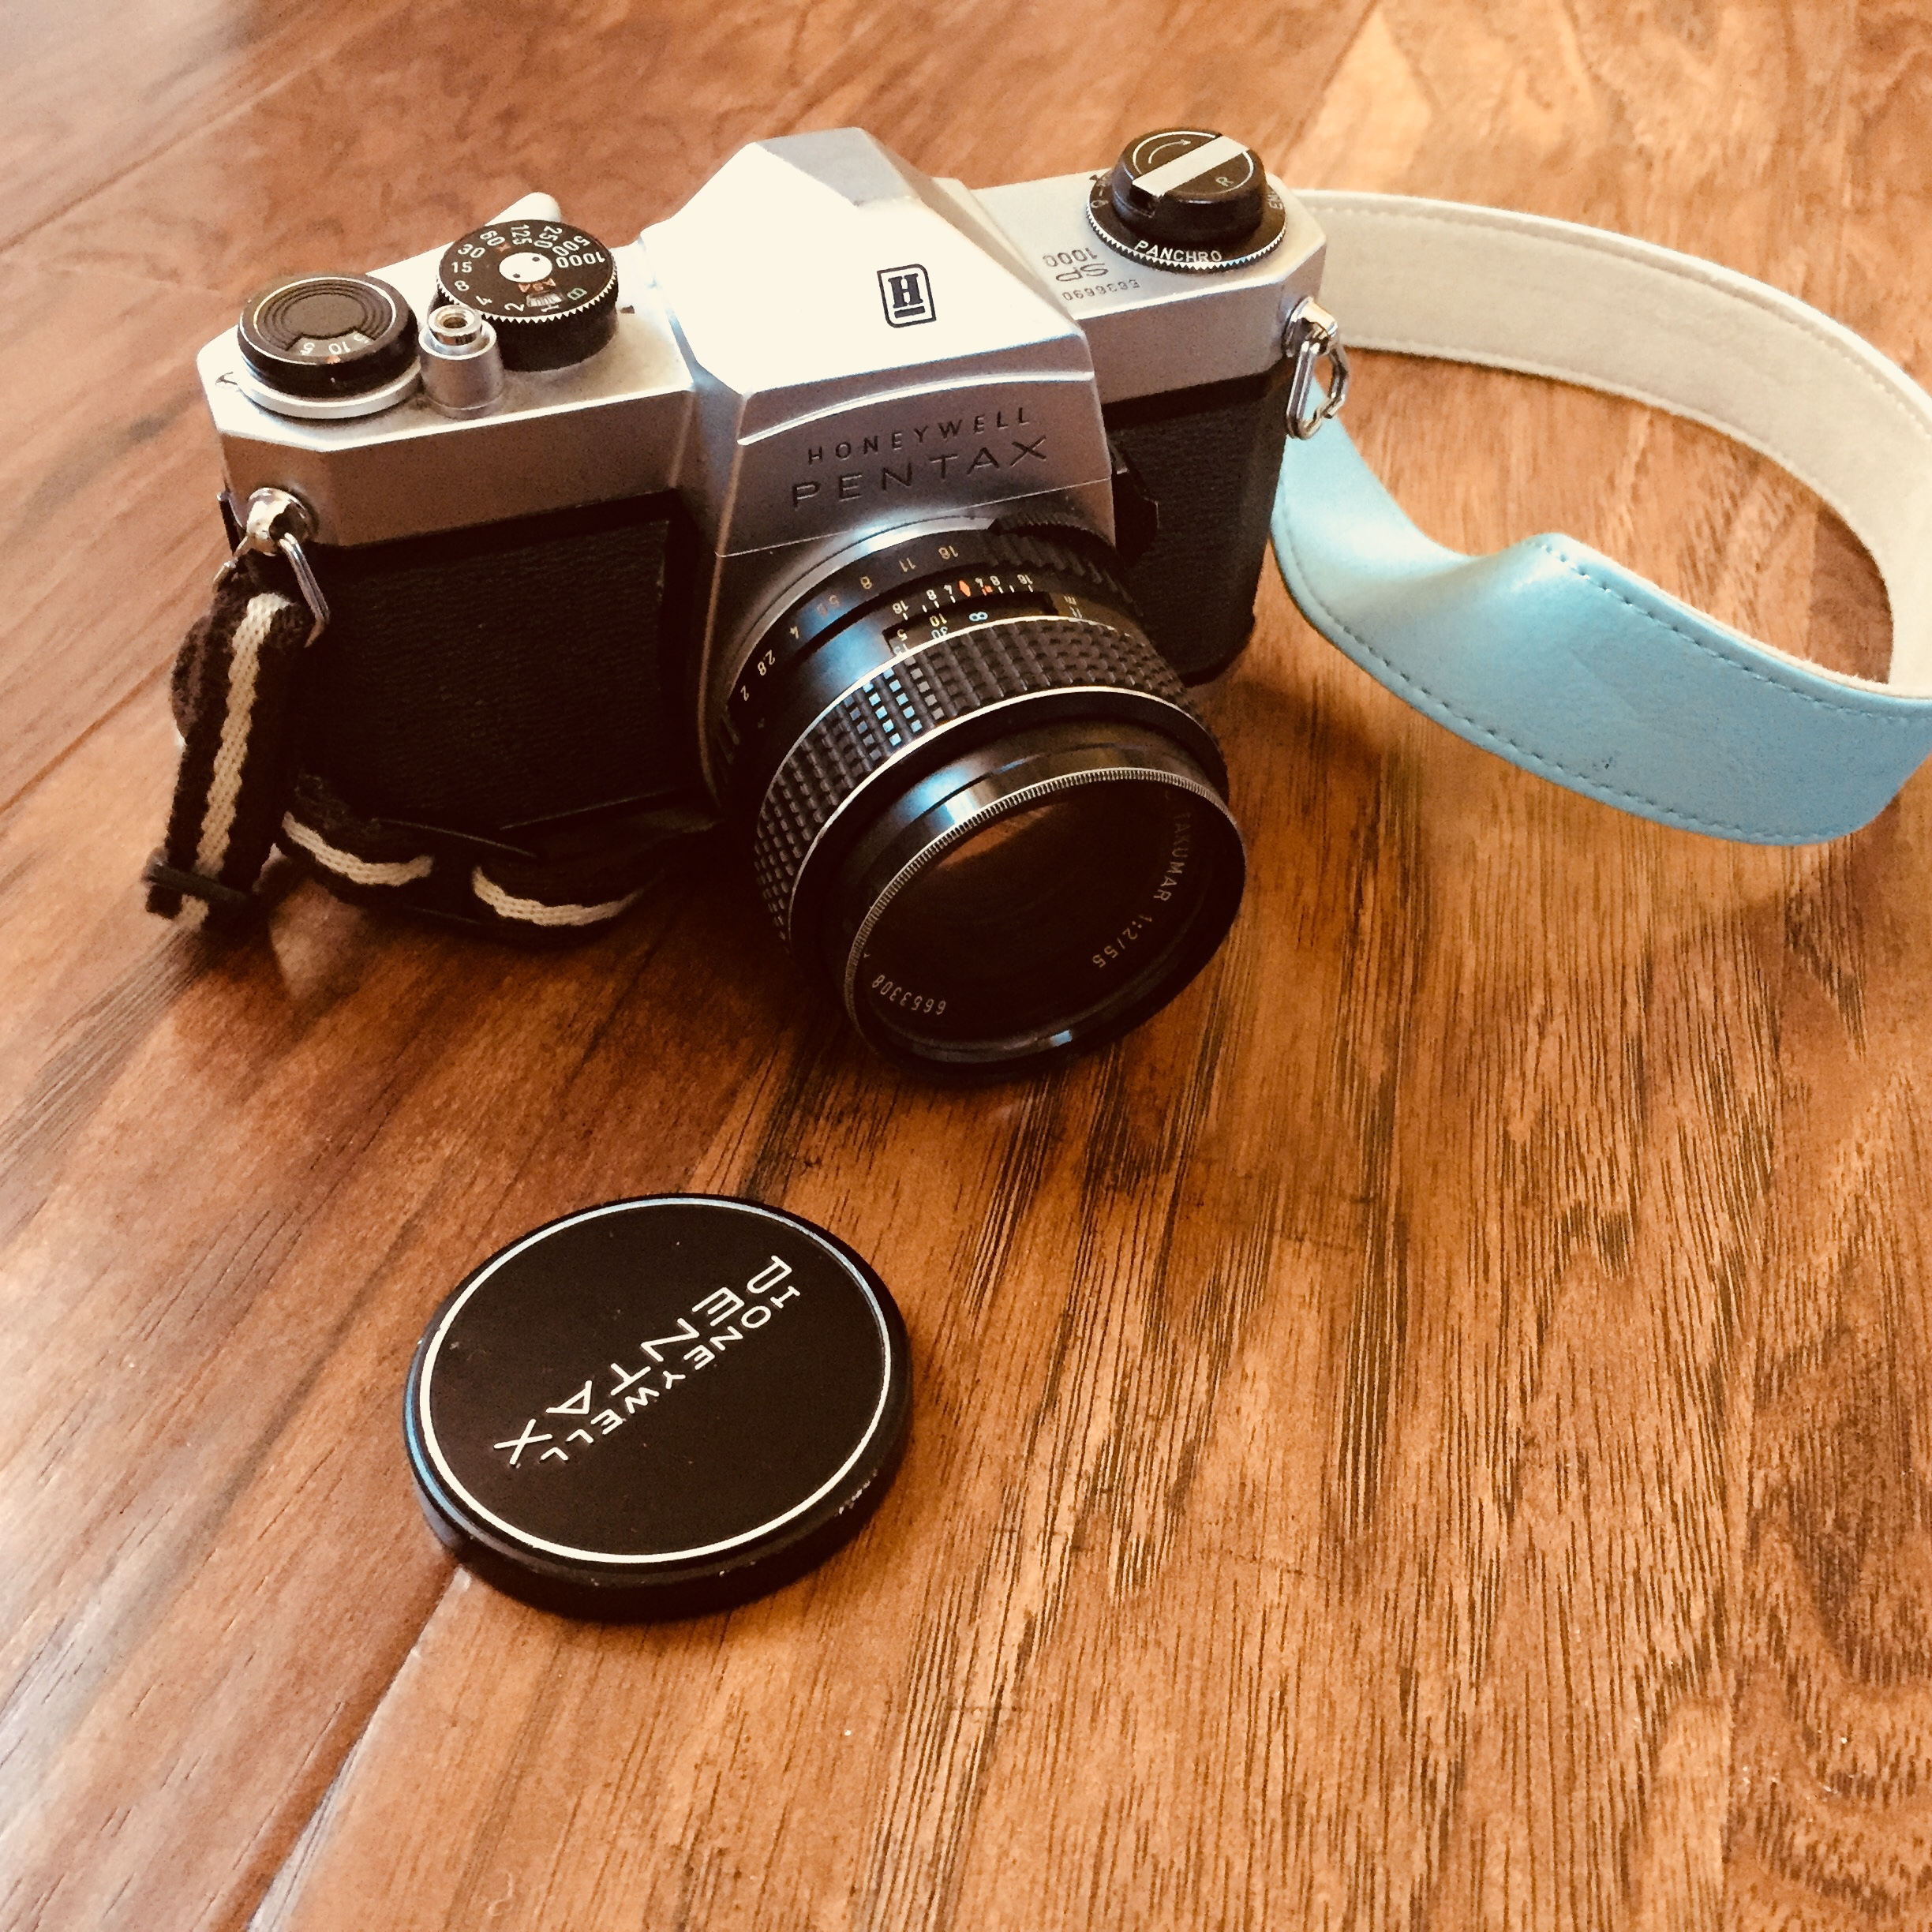 My first camera was a Pentax SP-1000, acquired at the ripe old age of 12. Little did I know that it would be the thing that helped me launch a freelance career in photography!